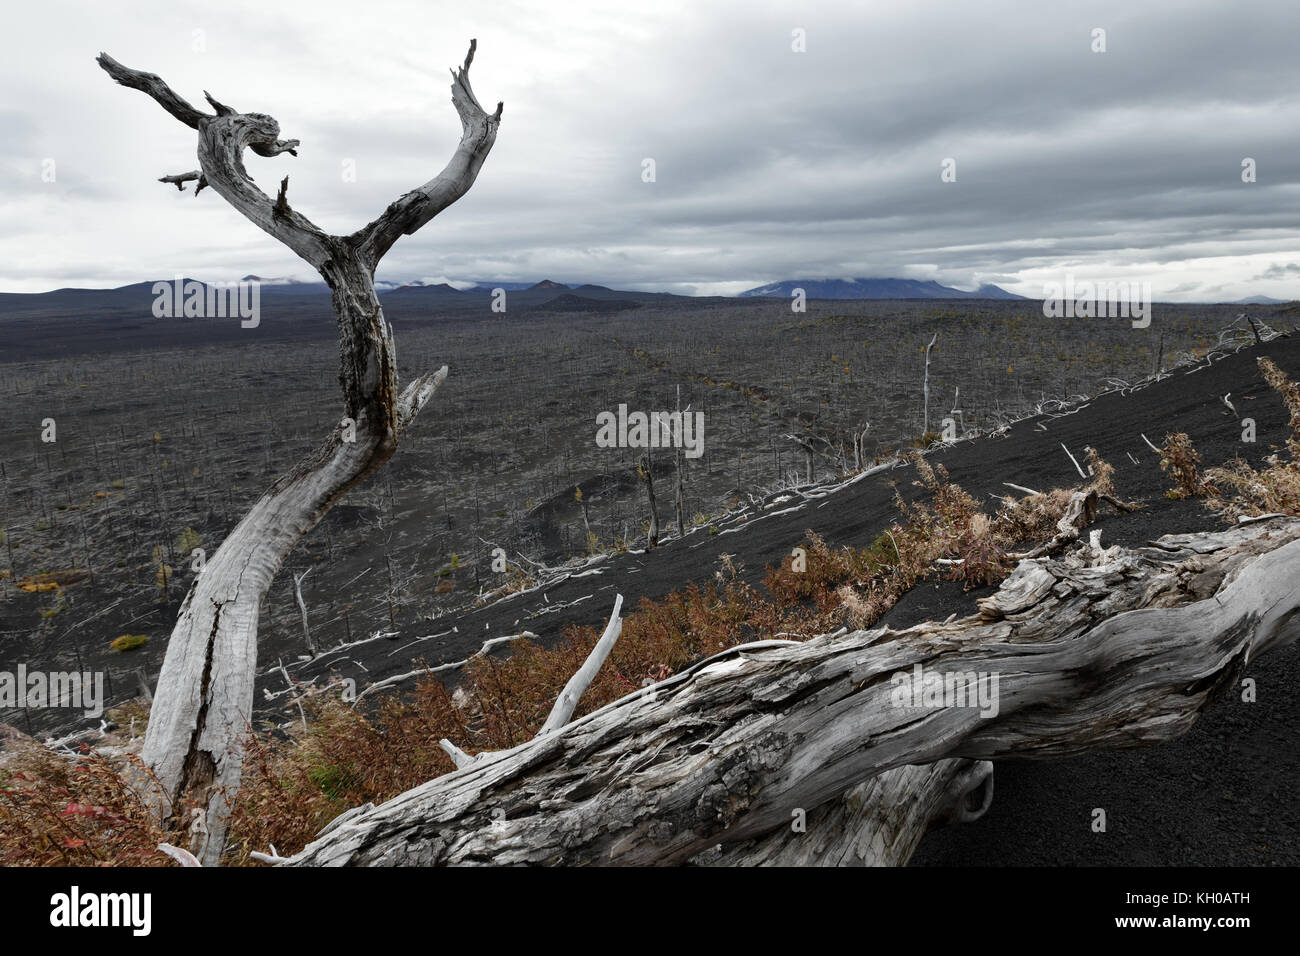 Volcano landscape on Kamchatka Peninsula: Dead Forest - consequence of natural disaster - catastrophic eruptions - Stock Image